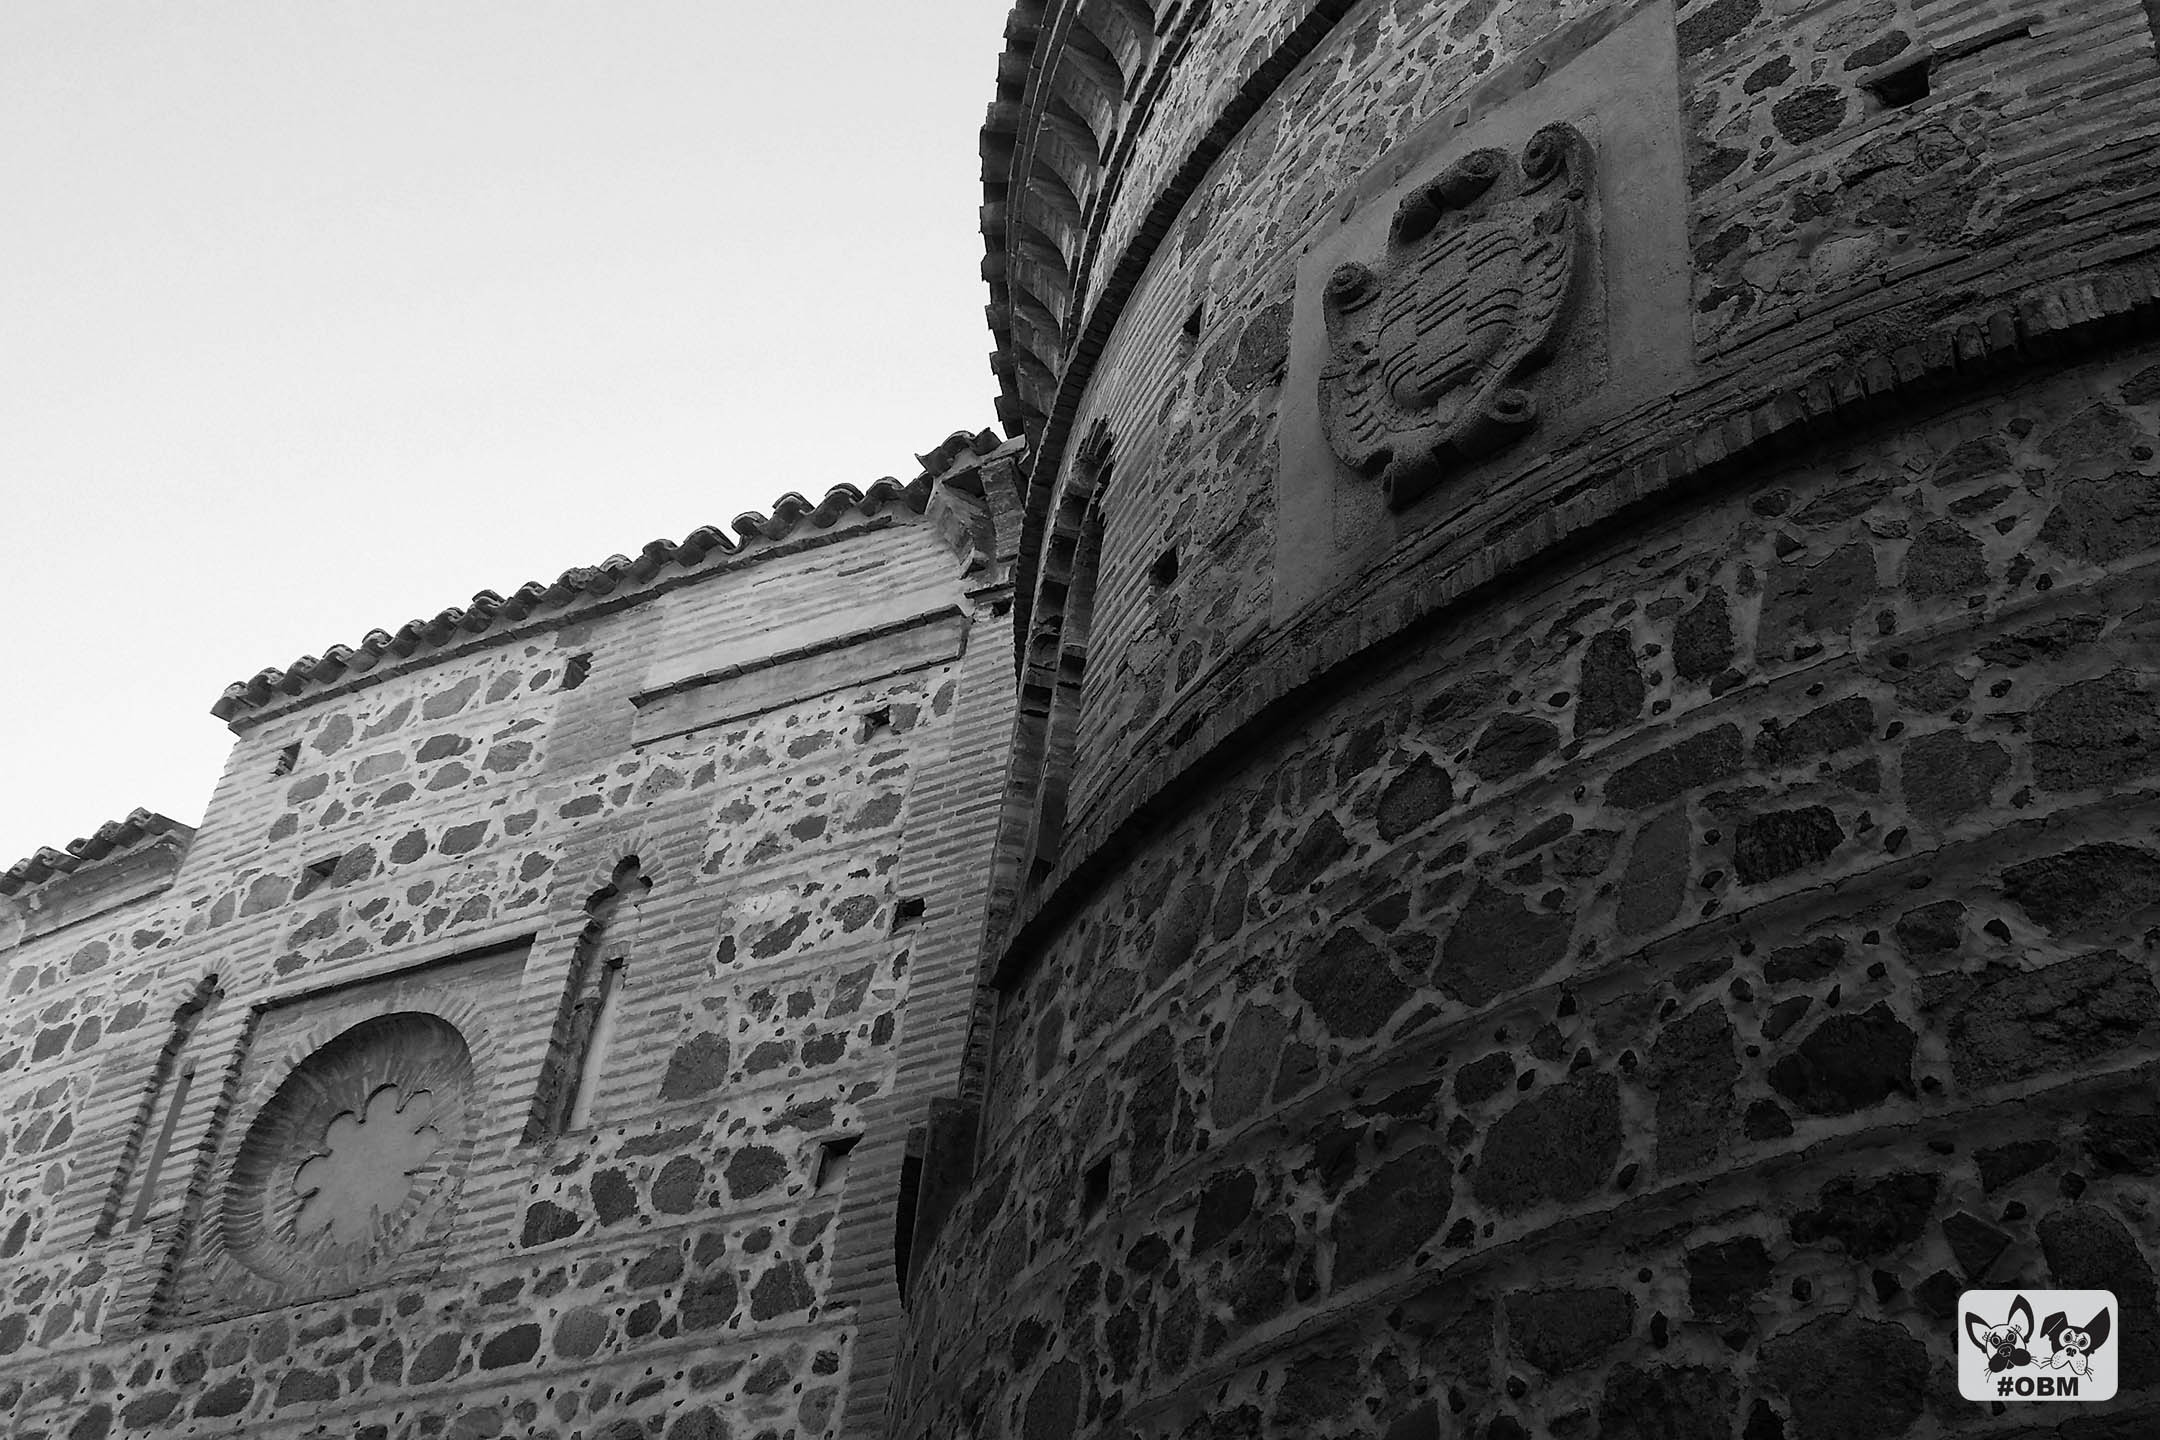 Toledo, great day trip from Madrid